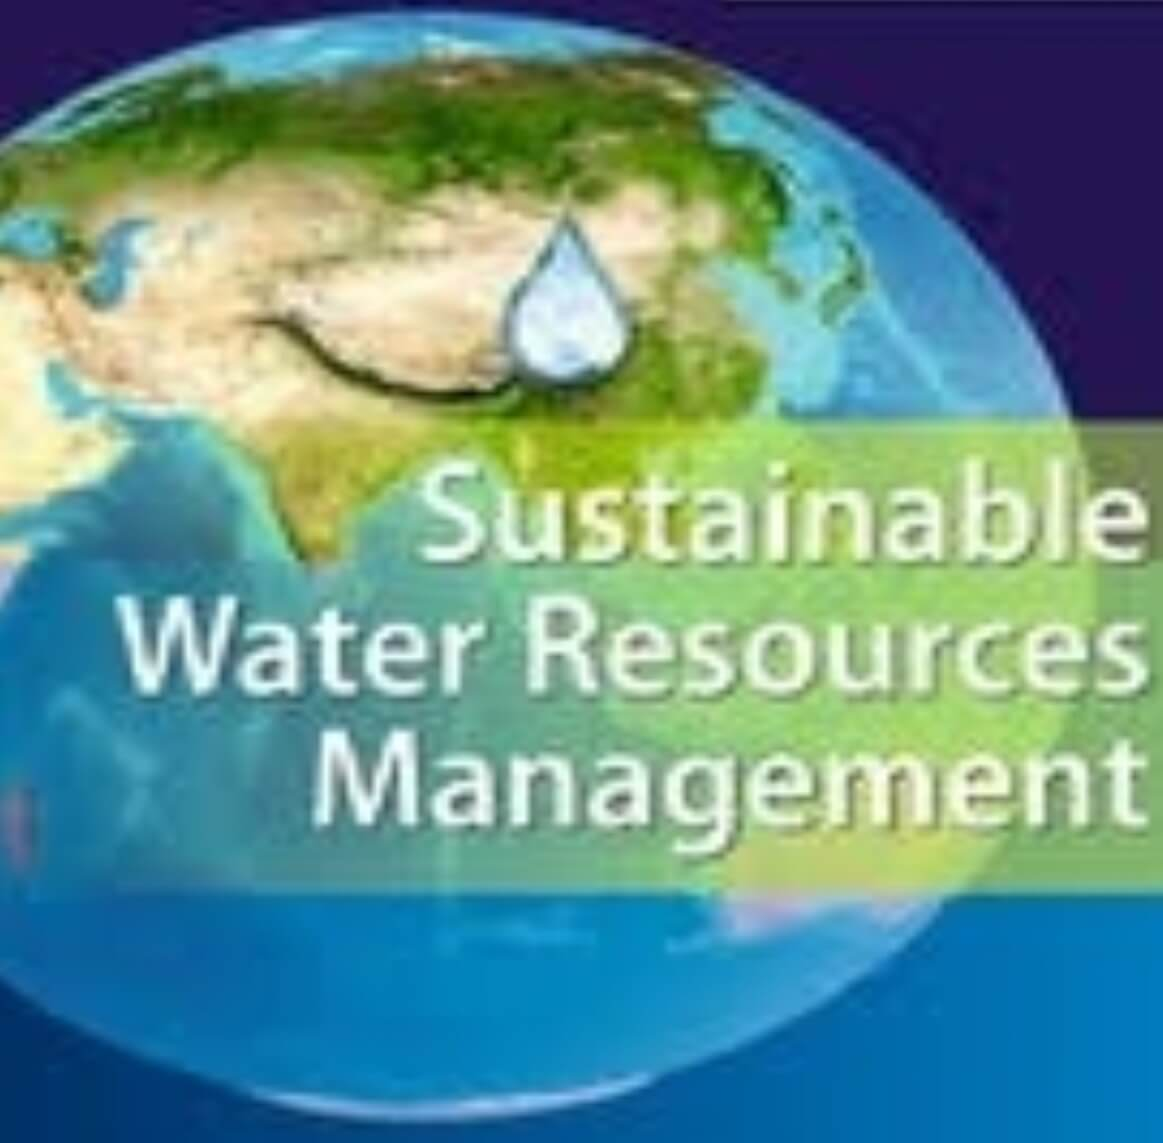 Rs 200 cr for State water resources